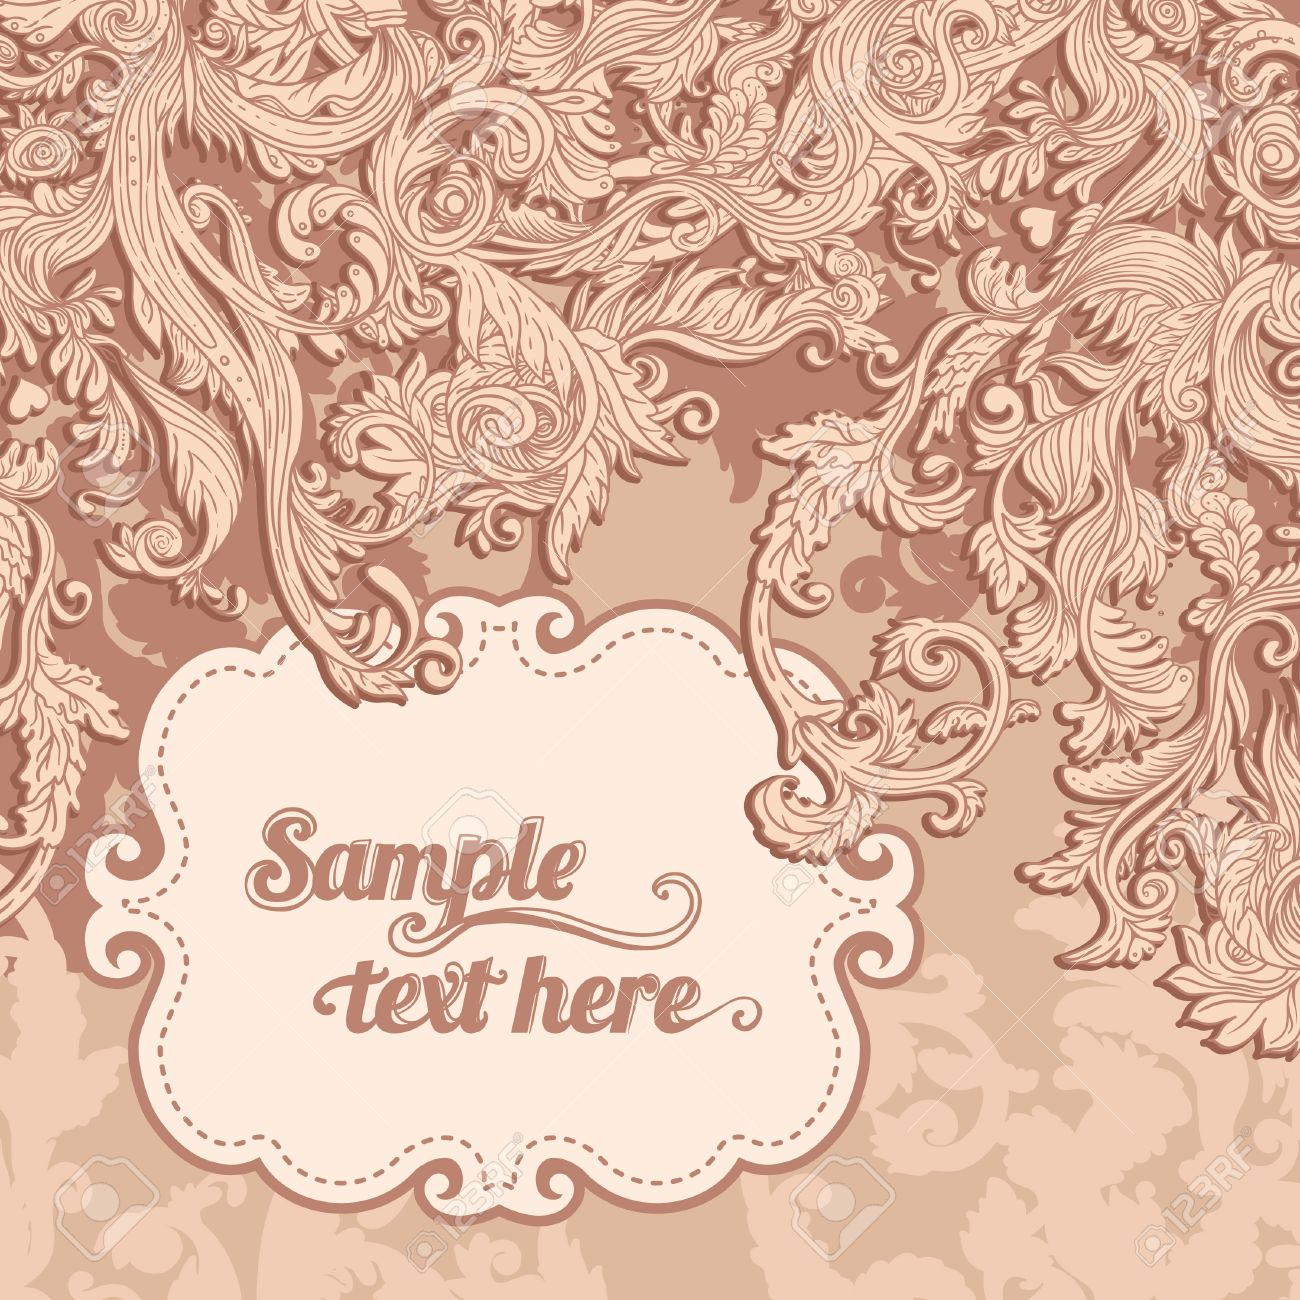 Vintage background ornate baroque pattern vector illustration stock - Vintage Background Ornate Baroque Pattern Vector Illustration Stock Vector 24616567